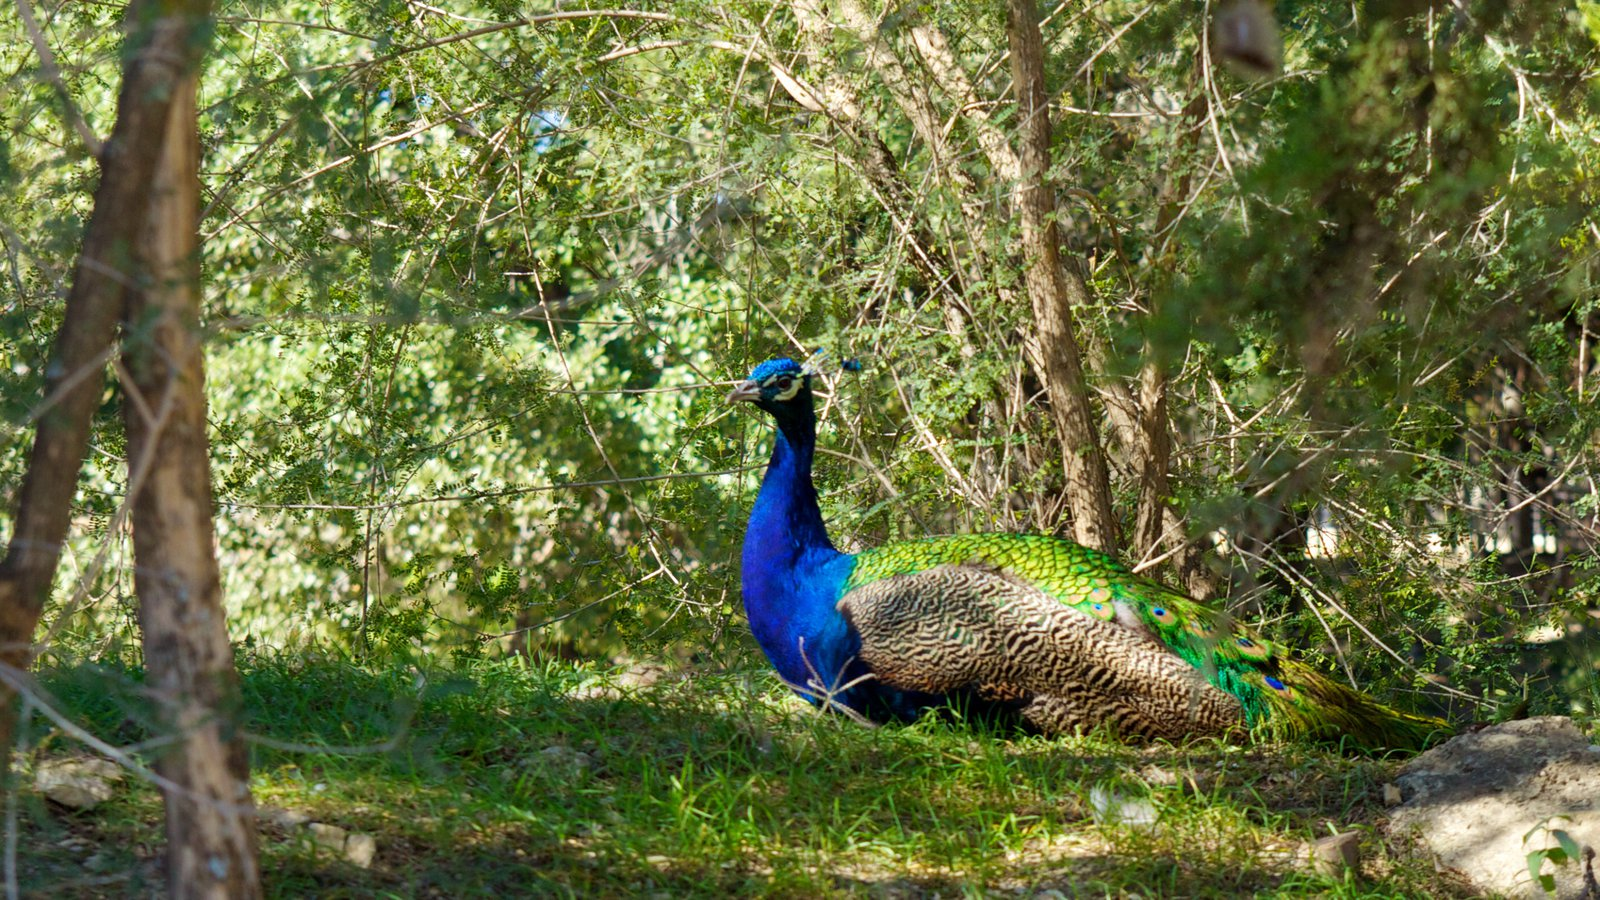 One of the many roaming peacocks at The Austin Zoo